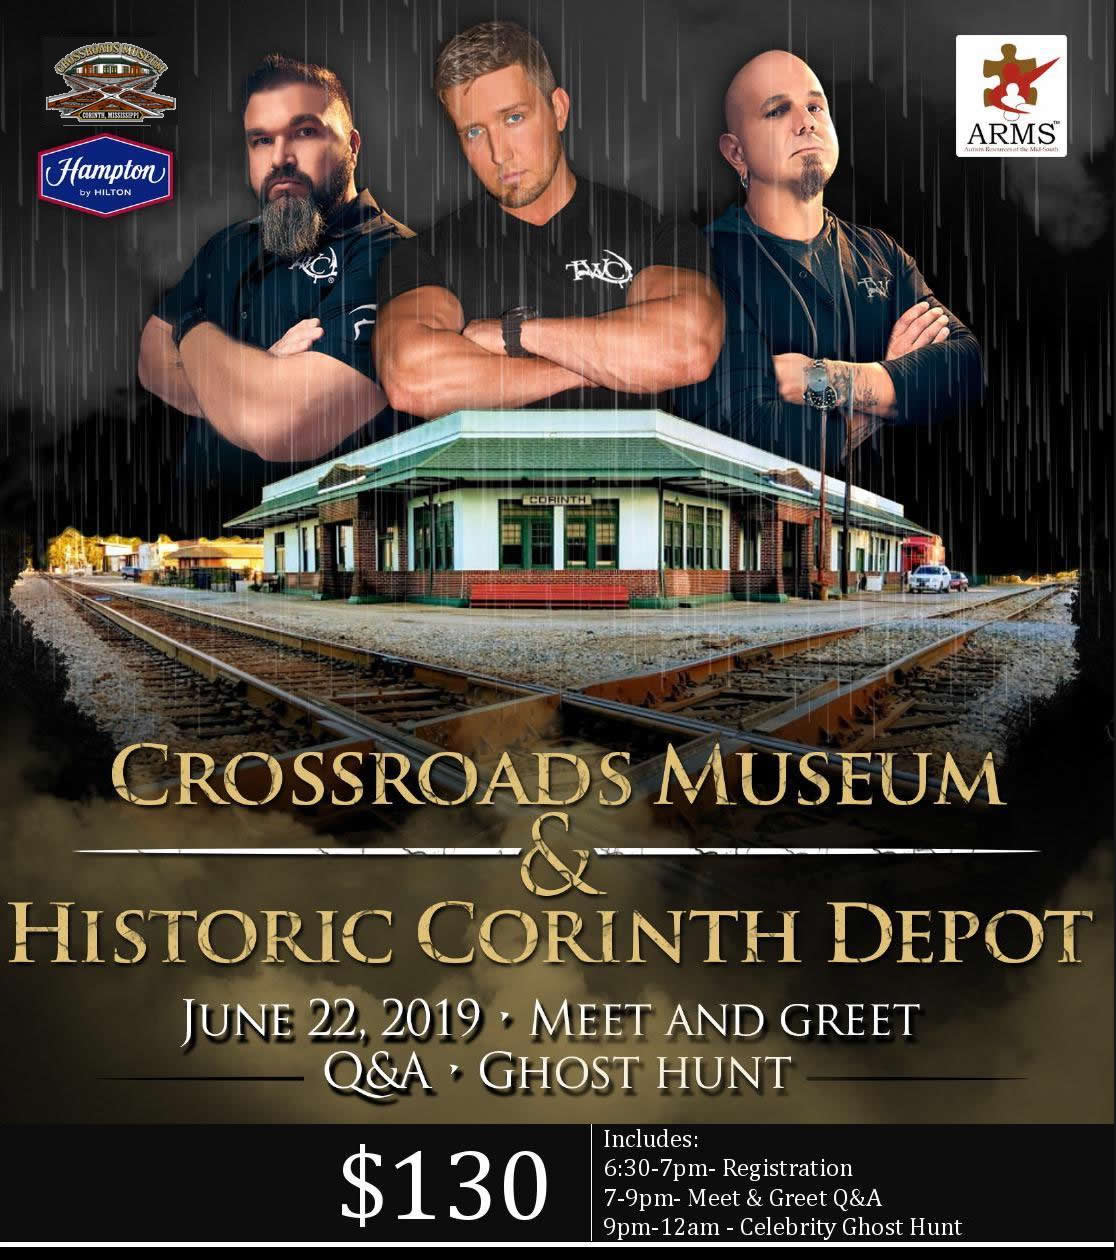 Crossroads Museum Celebrity Ghost Hunt | Crossroads Museum